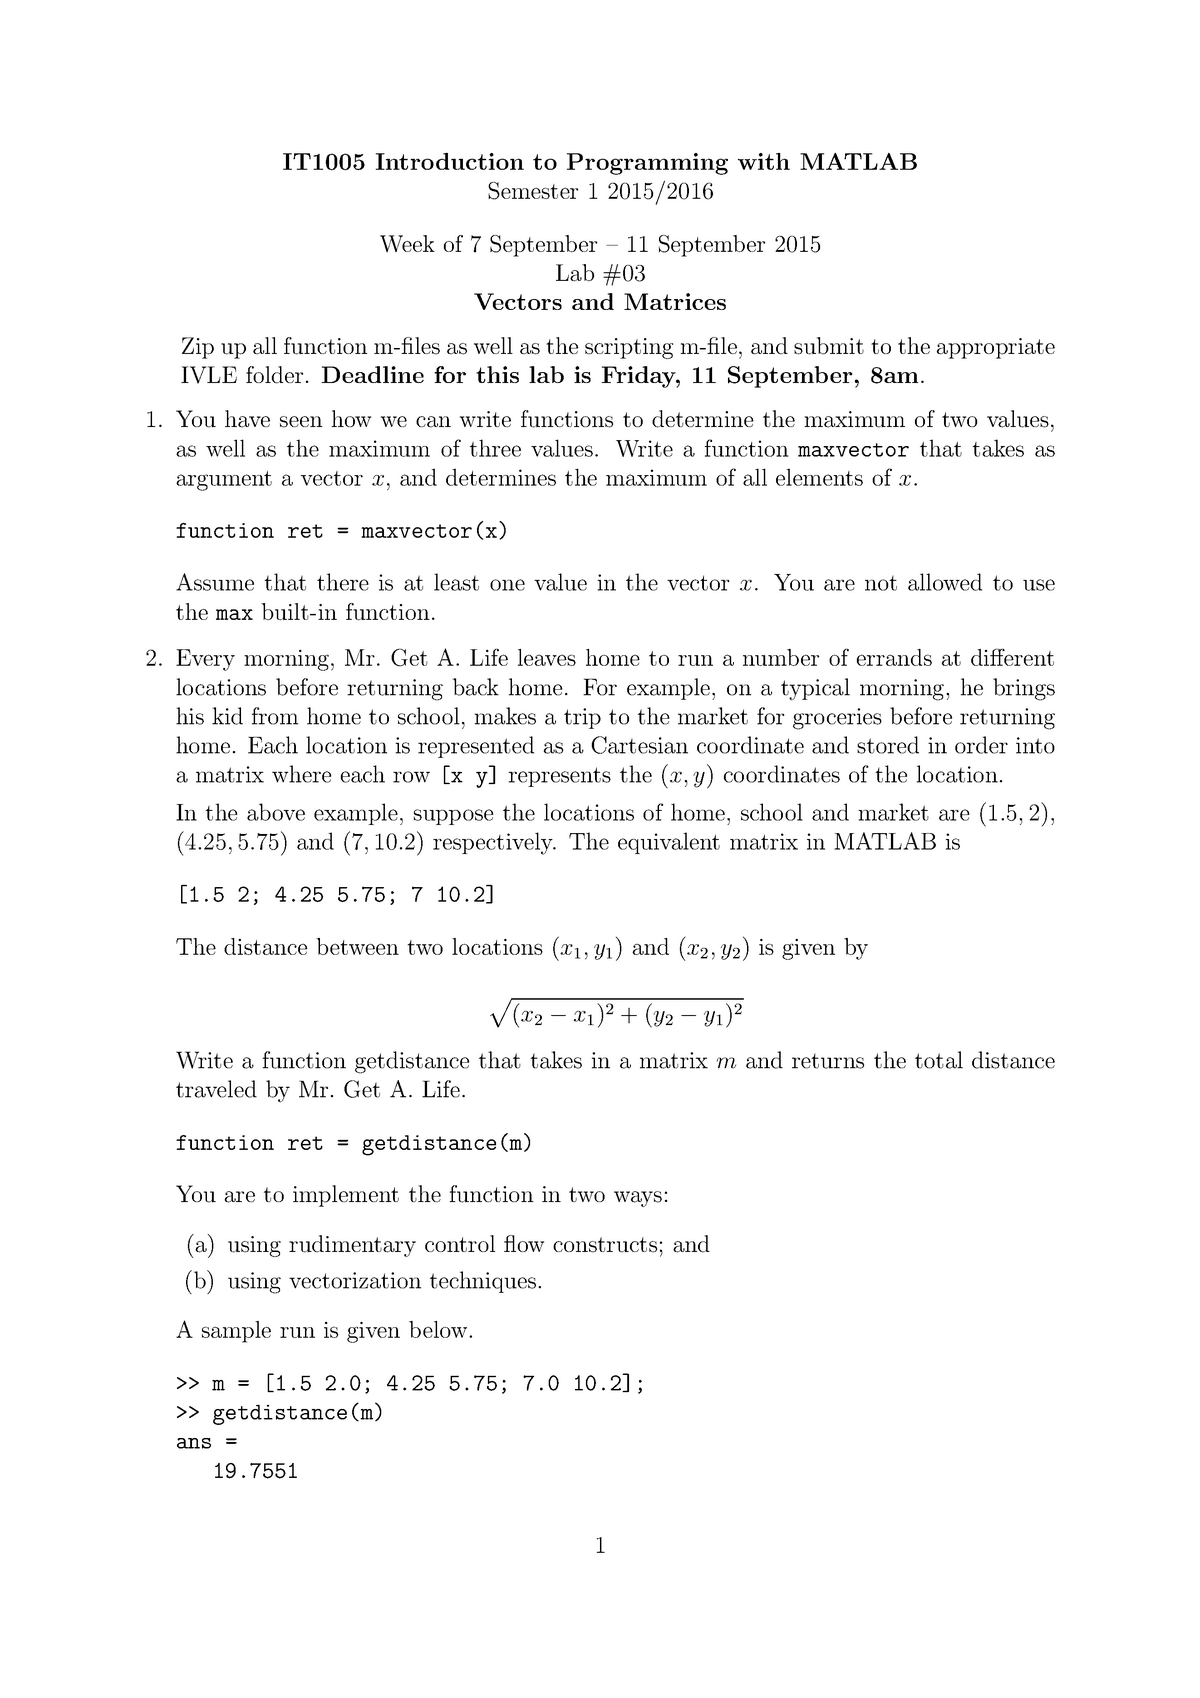 Lab03 - Vectors and Matrices - IT1005: Introduction to